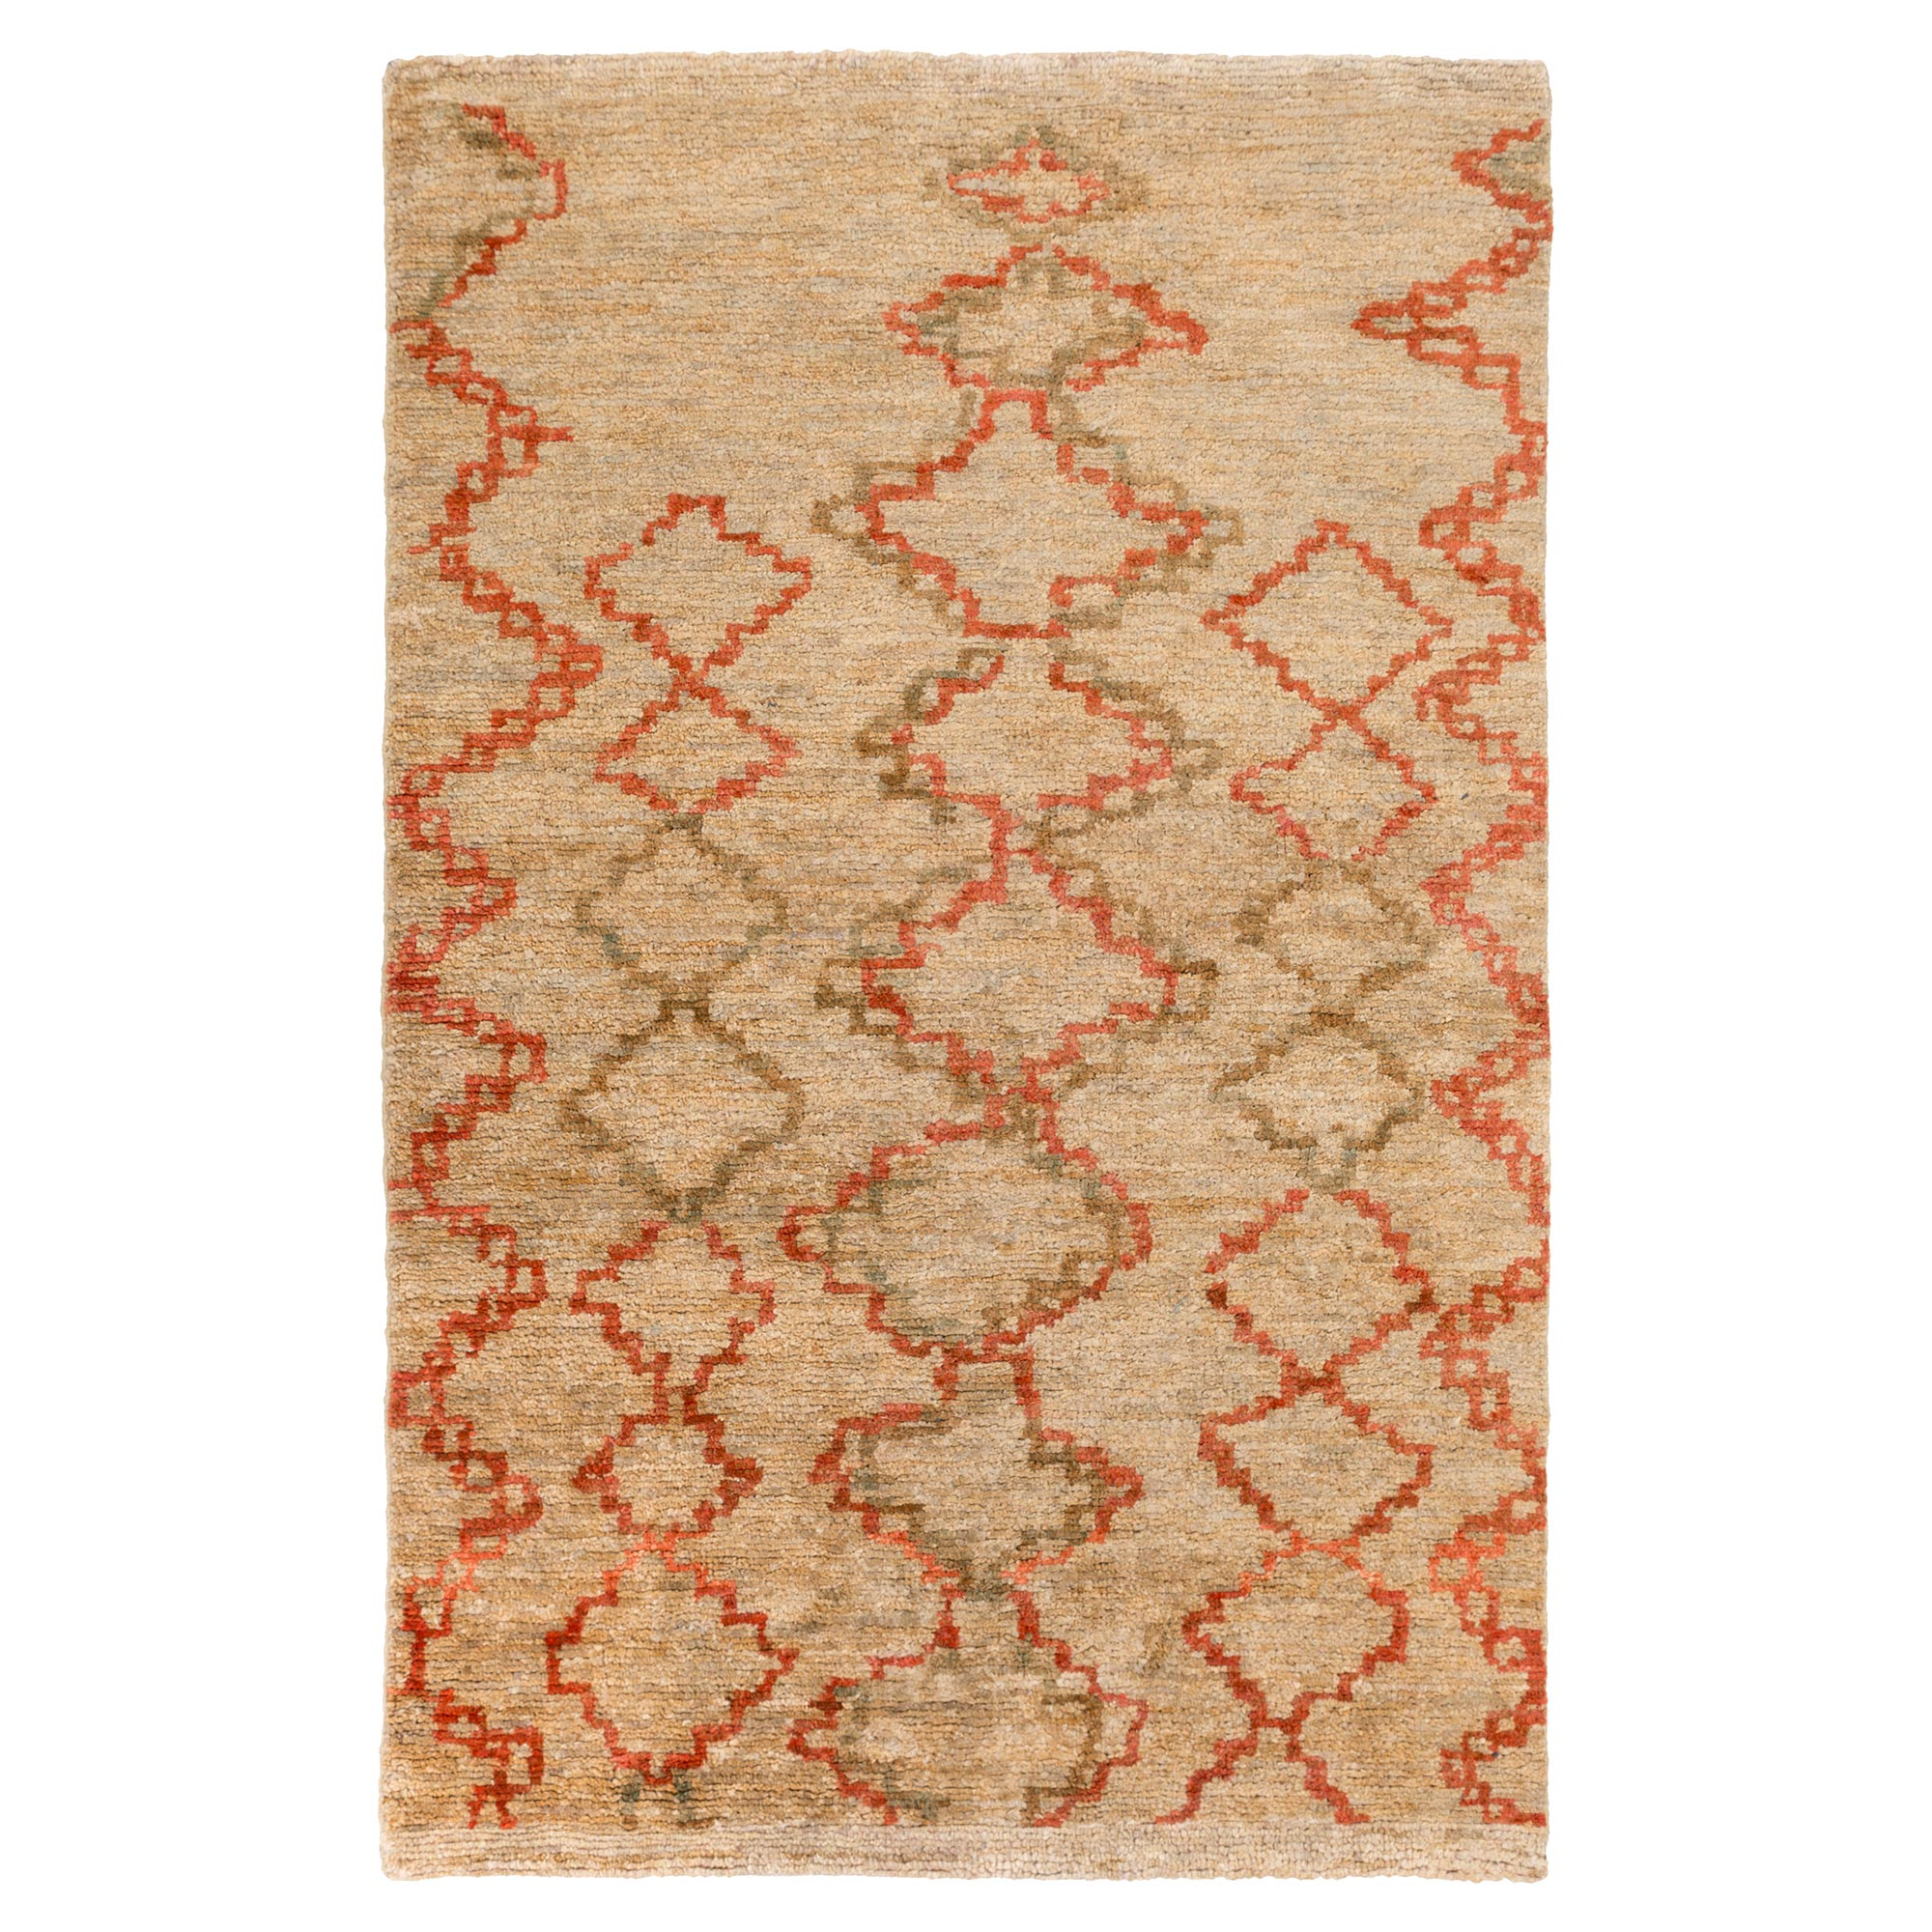 Nalia Bazaar Burnt Orange Beige Jute Rug - 9x13